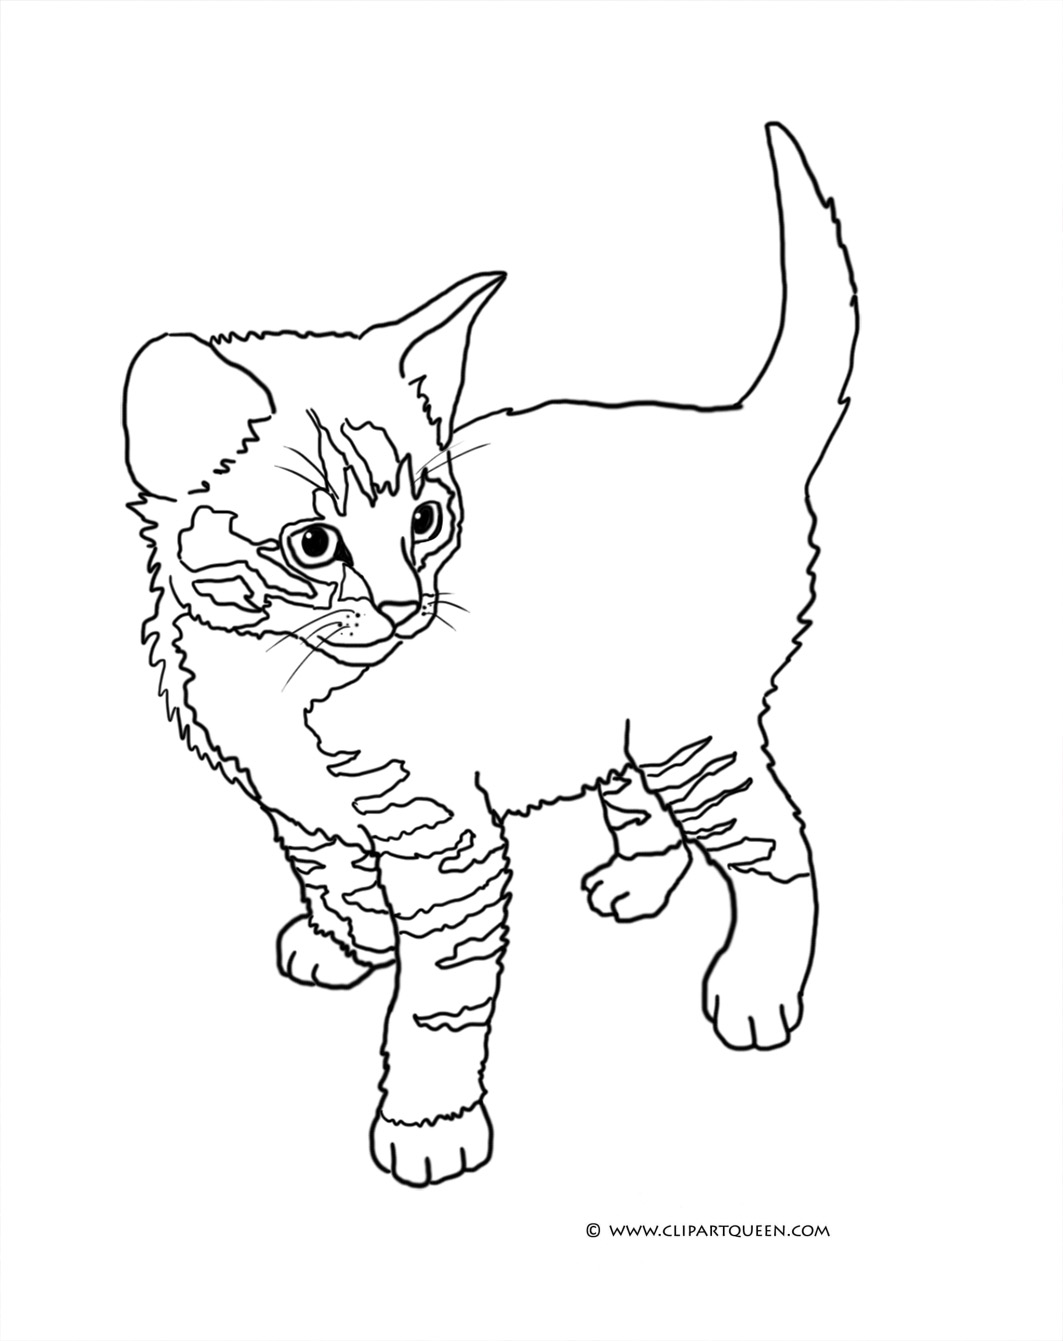 Tabby Cat Coloring Sheets